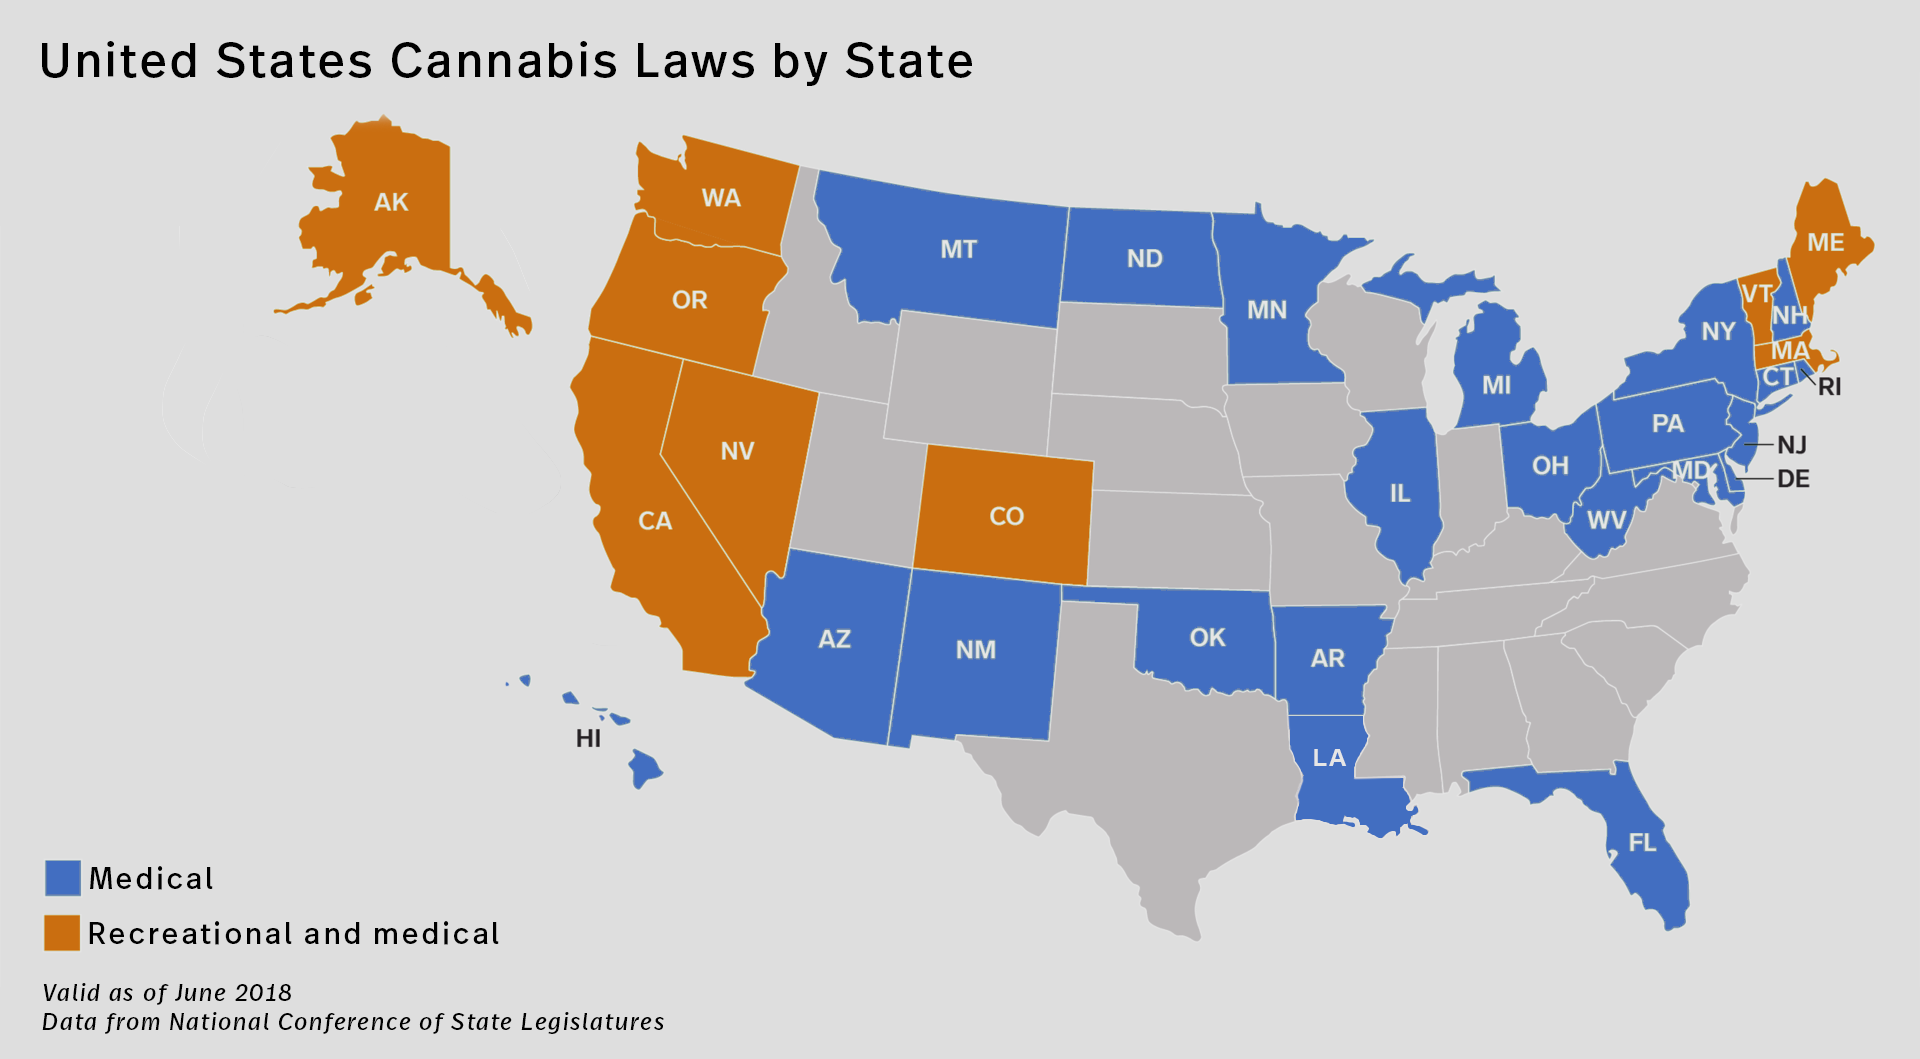 Cannabis Legalization in the United States: An Overview